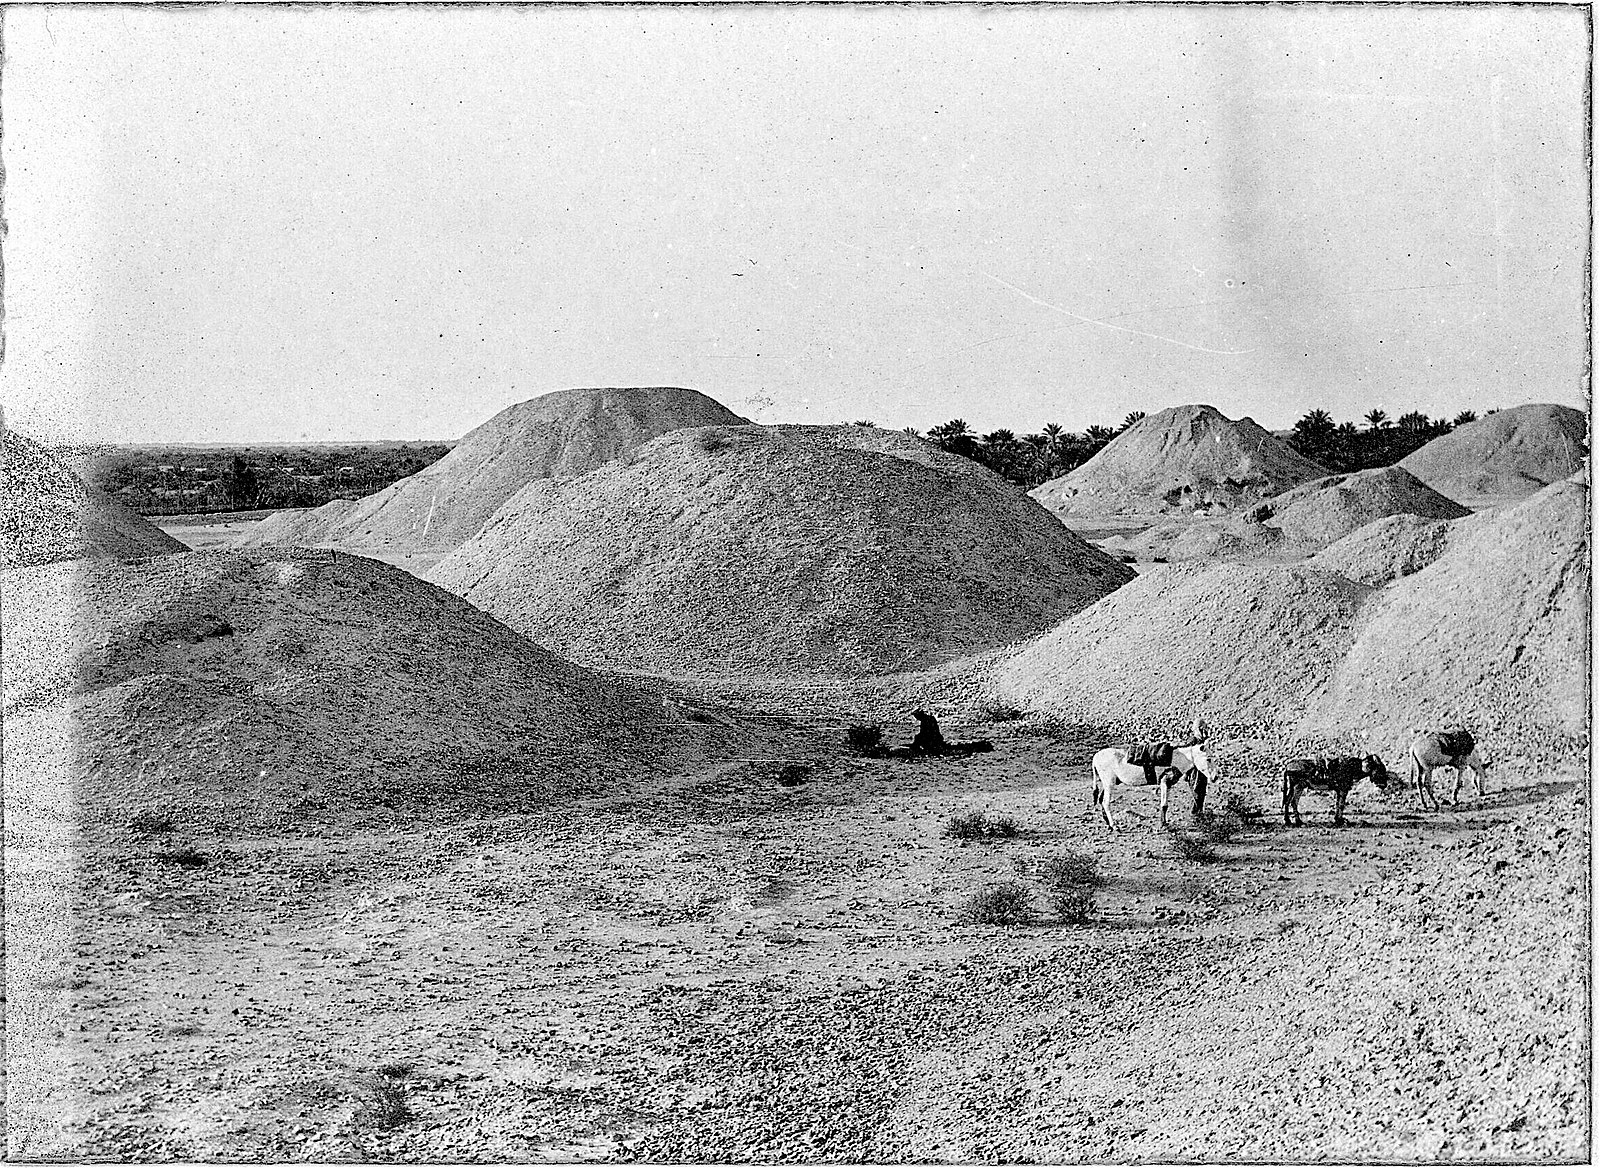 [Image: 1600px-Burial_Mounds_in_Bahrain_1918.jpg]